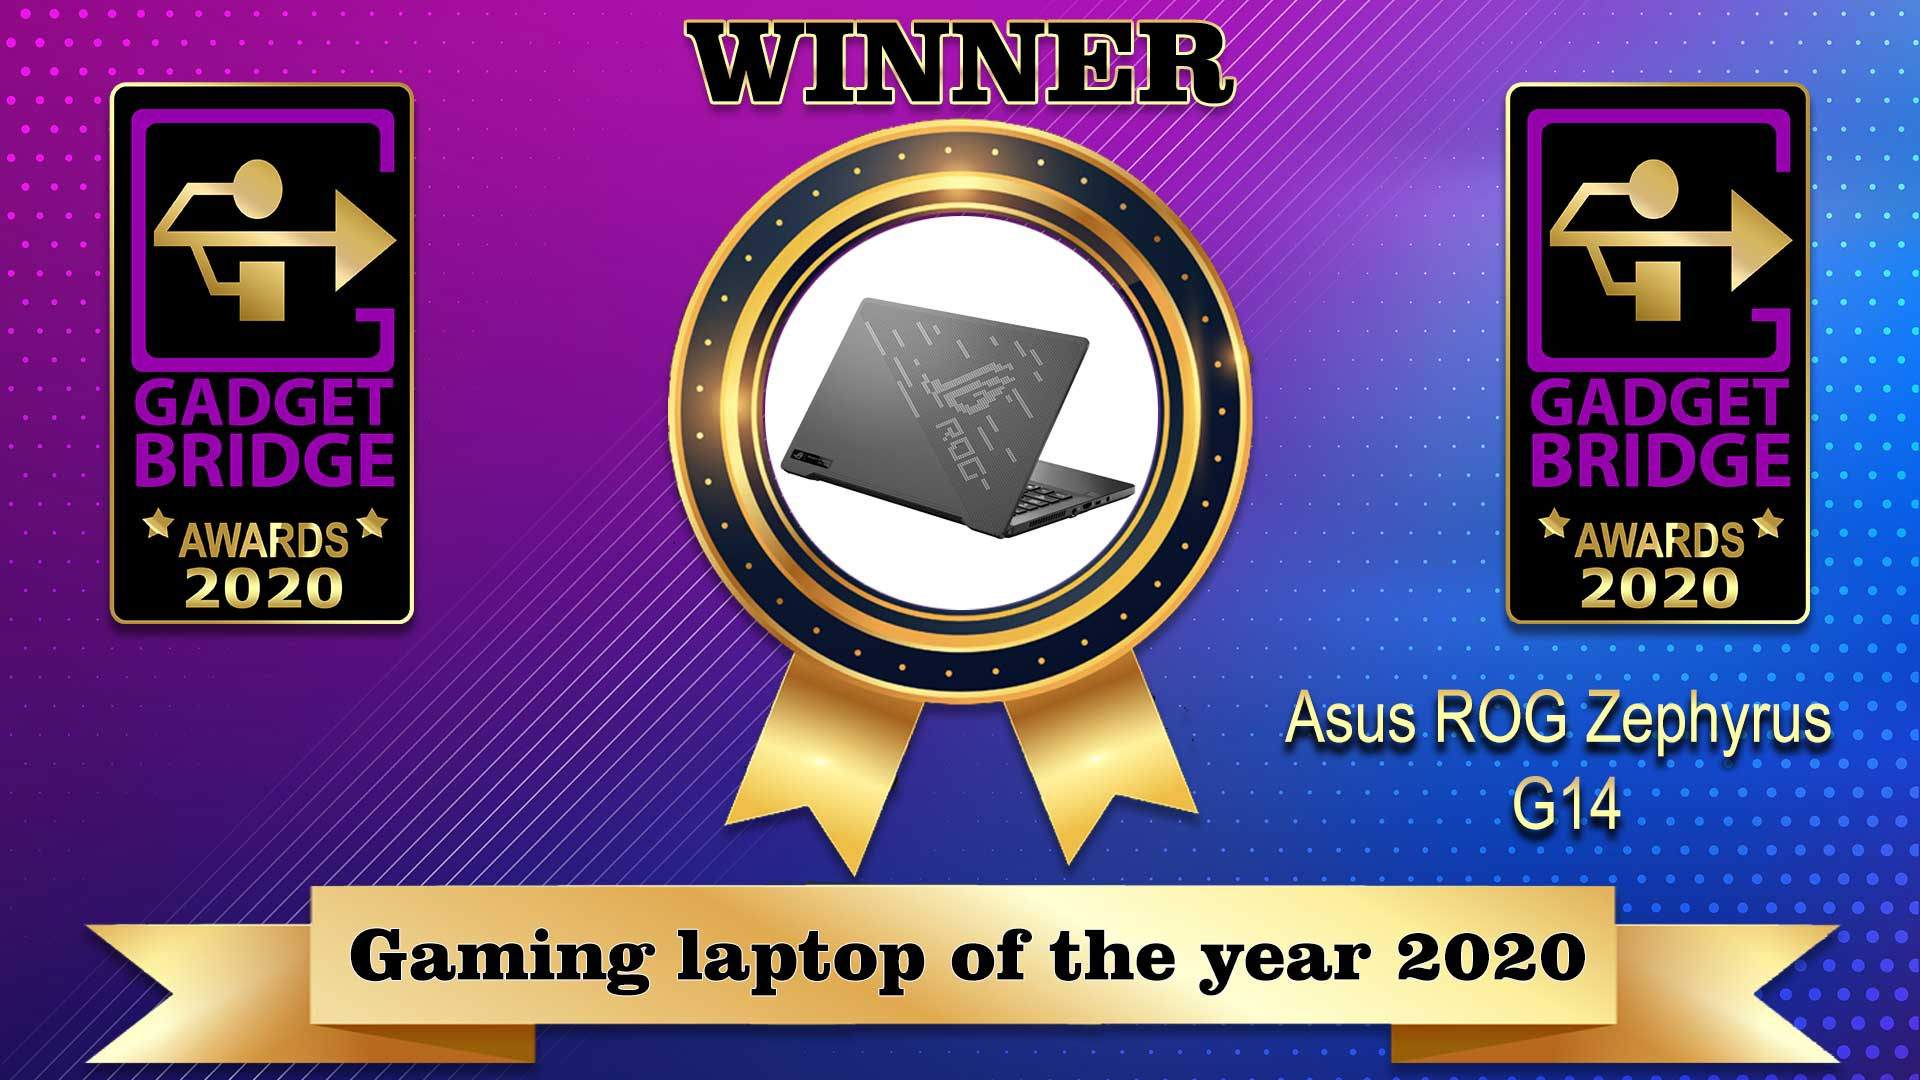 Gaming-laptop-of-the-year-2020